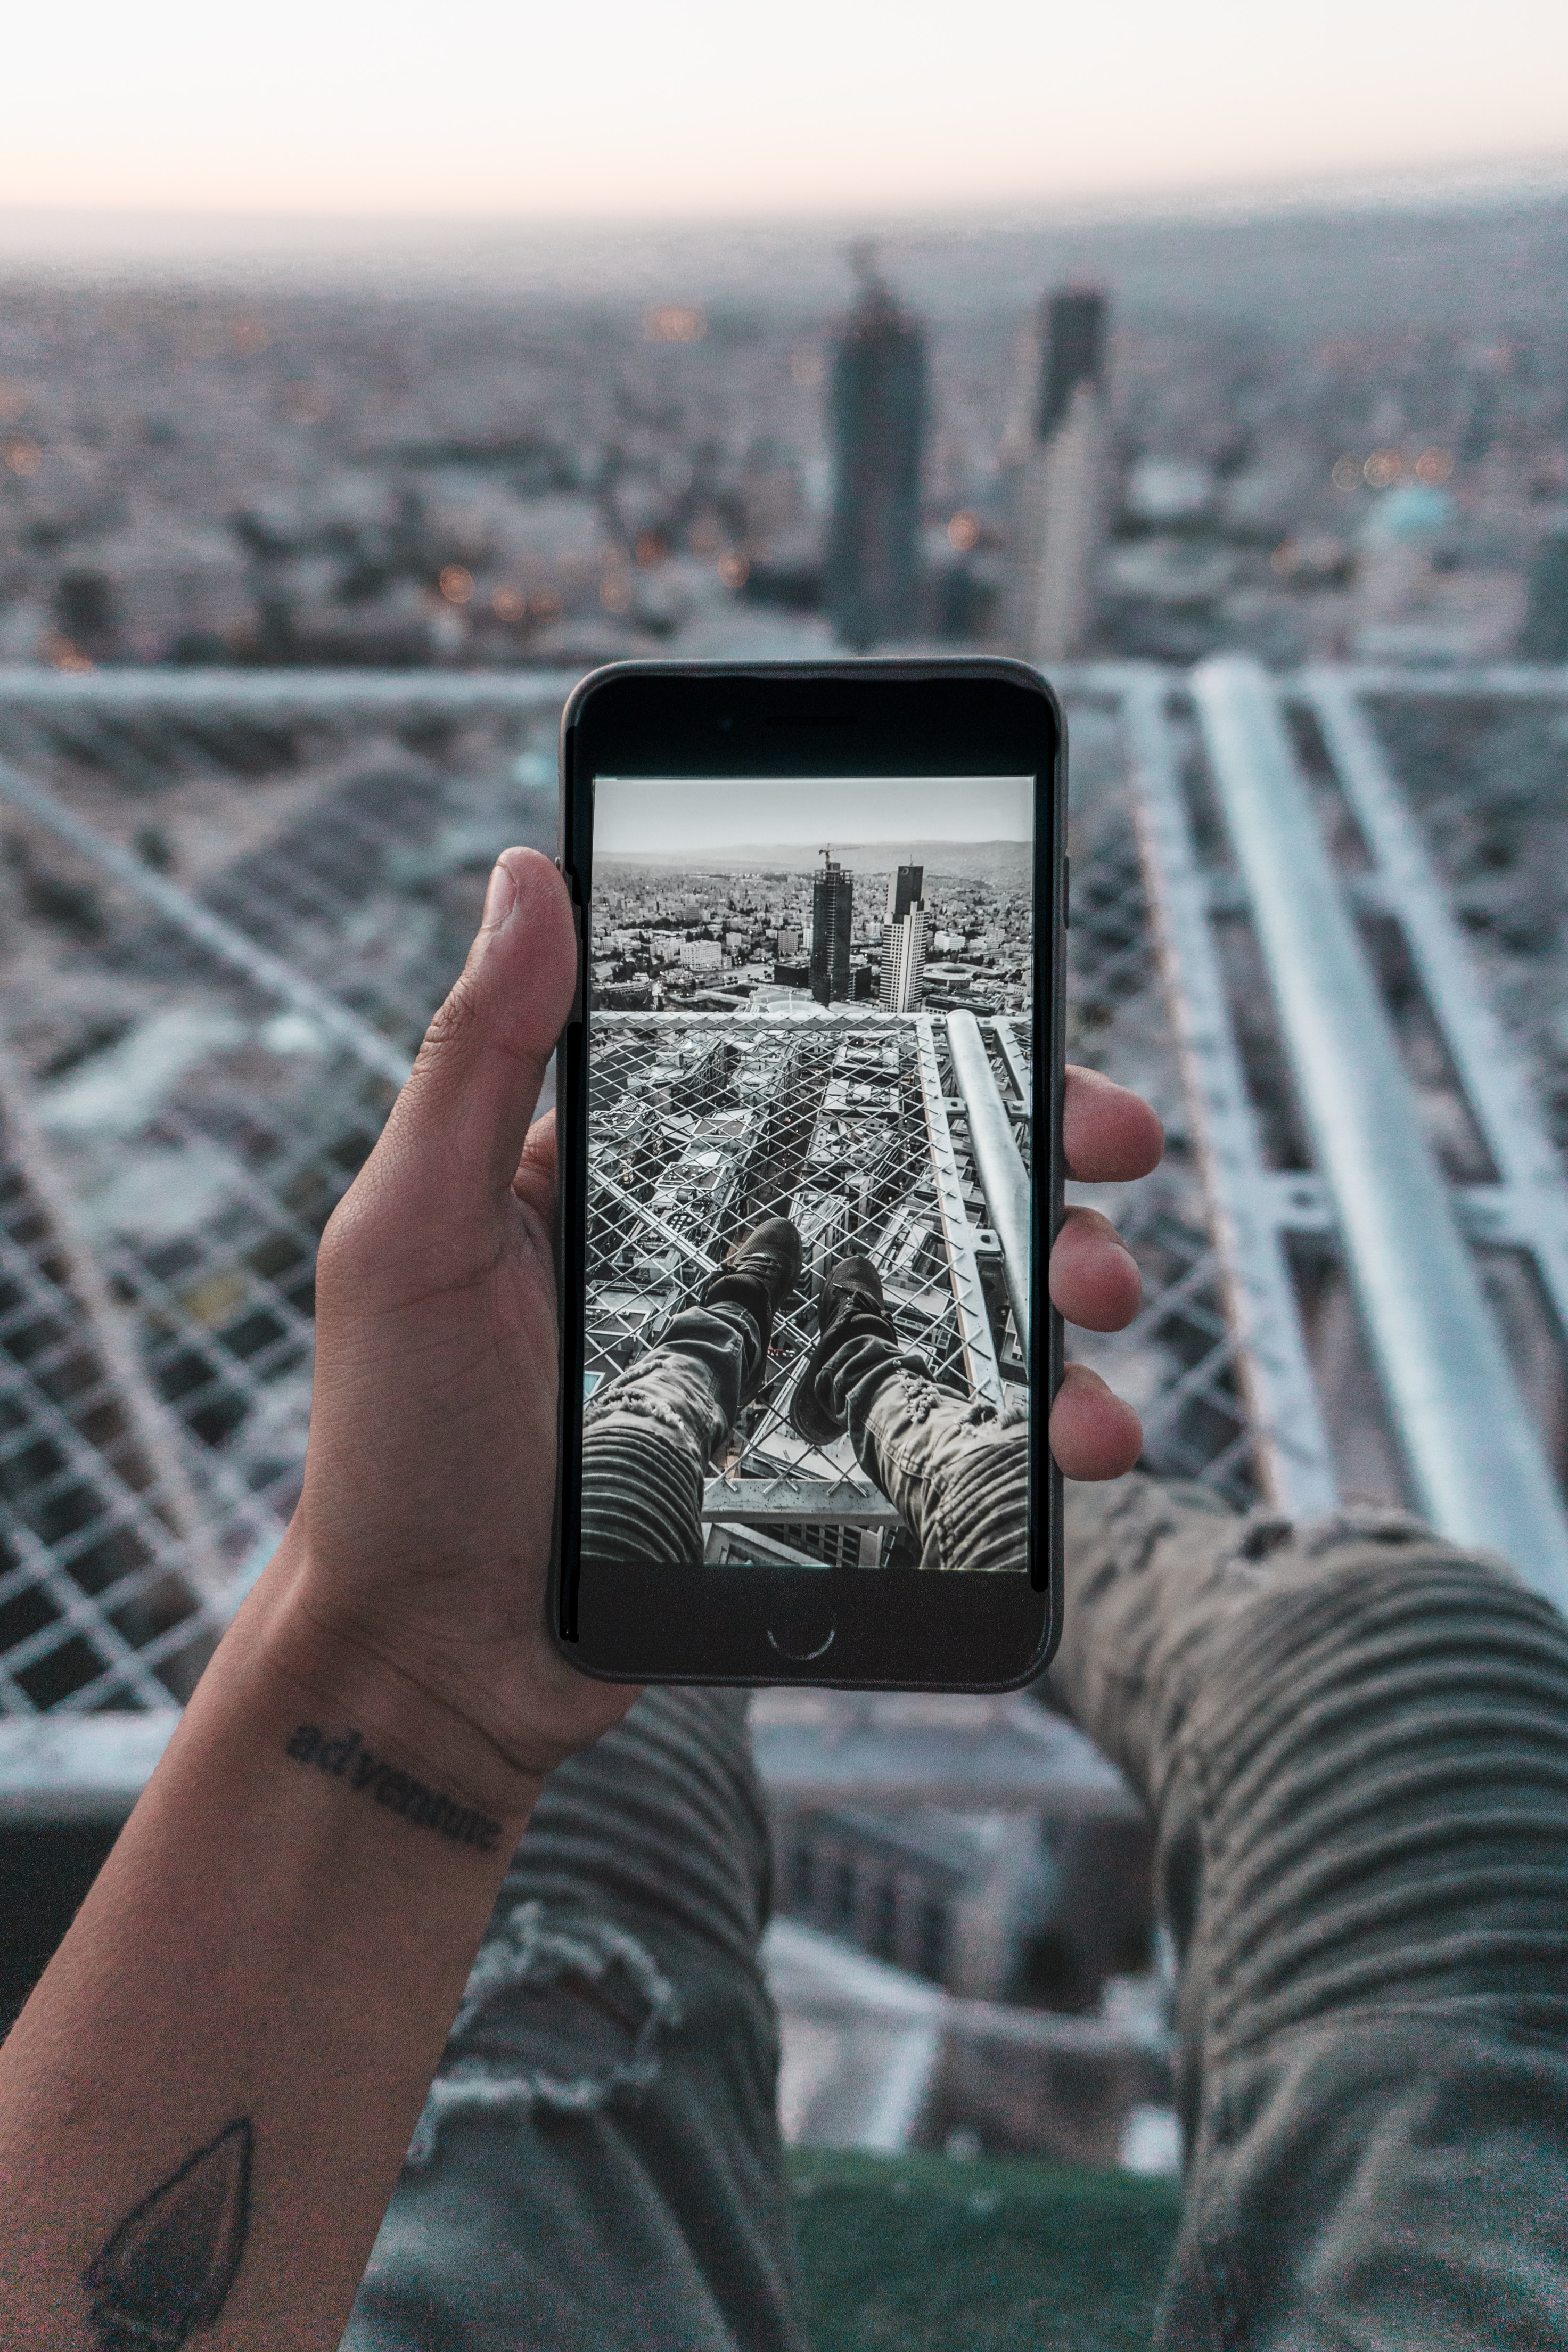 156326 Screensavers and Wallpapers Photo for phone. Download Miscellanea, Miscellaneous, Telephone, Hand, Photo, Roof, City, View From Above pictures for free